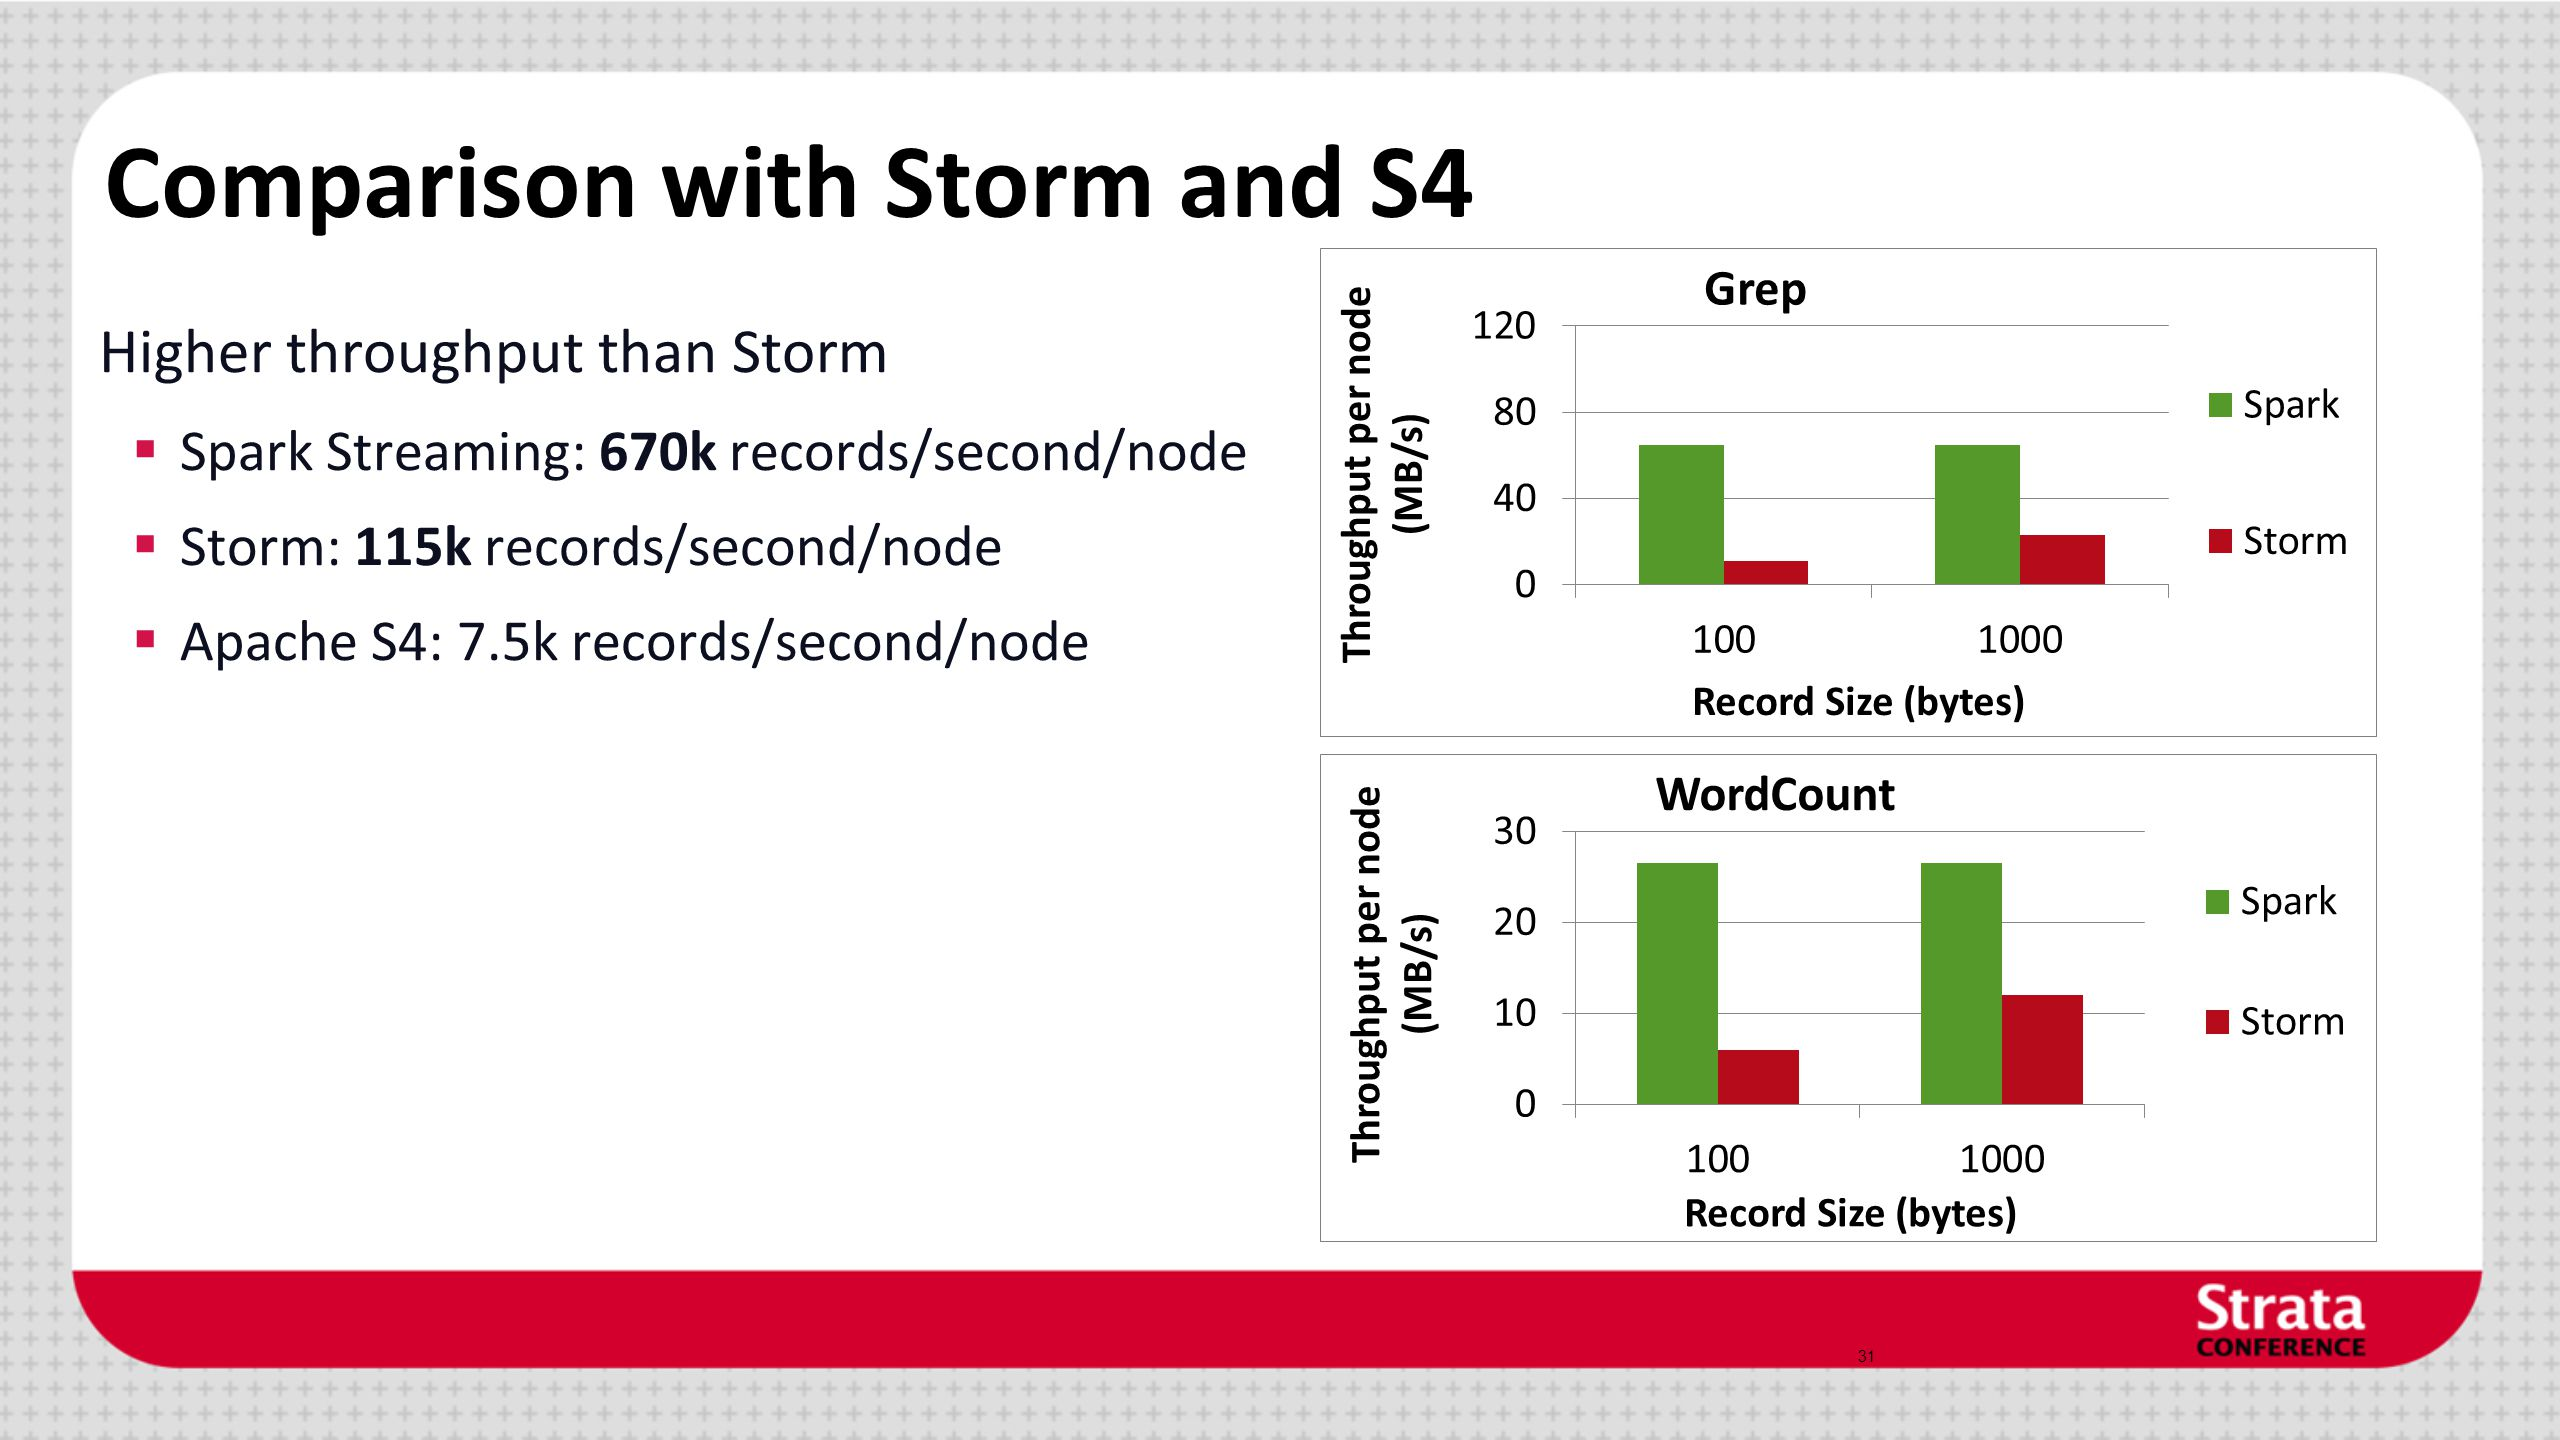 Comparison with Storm and S4